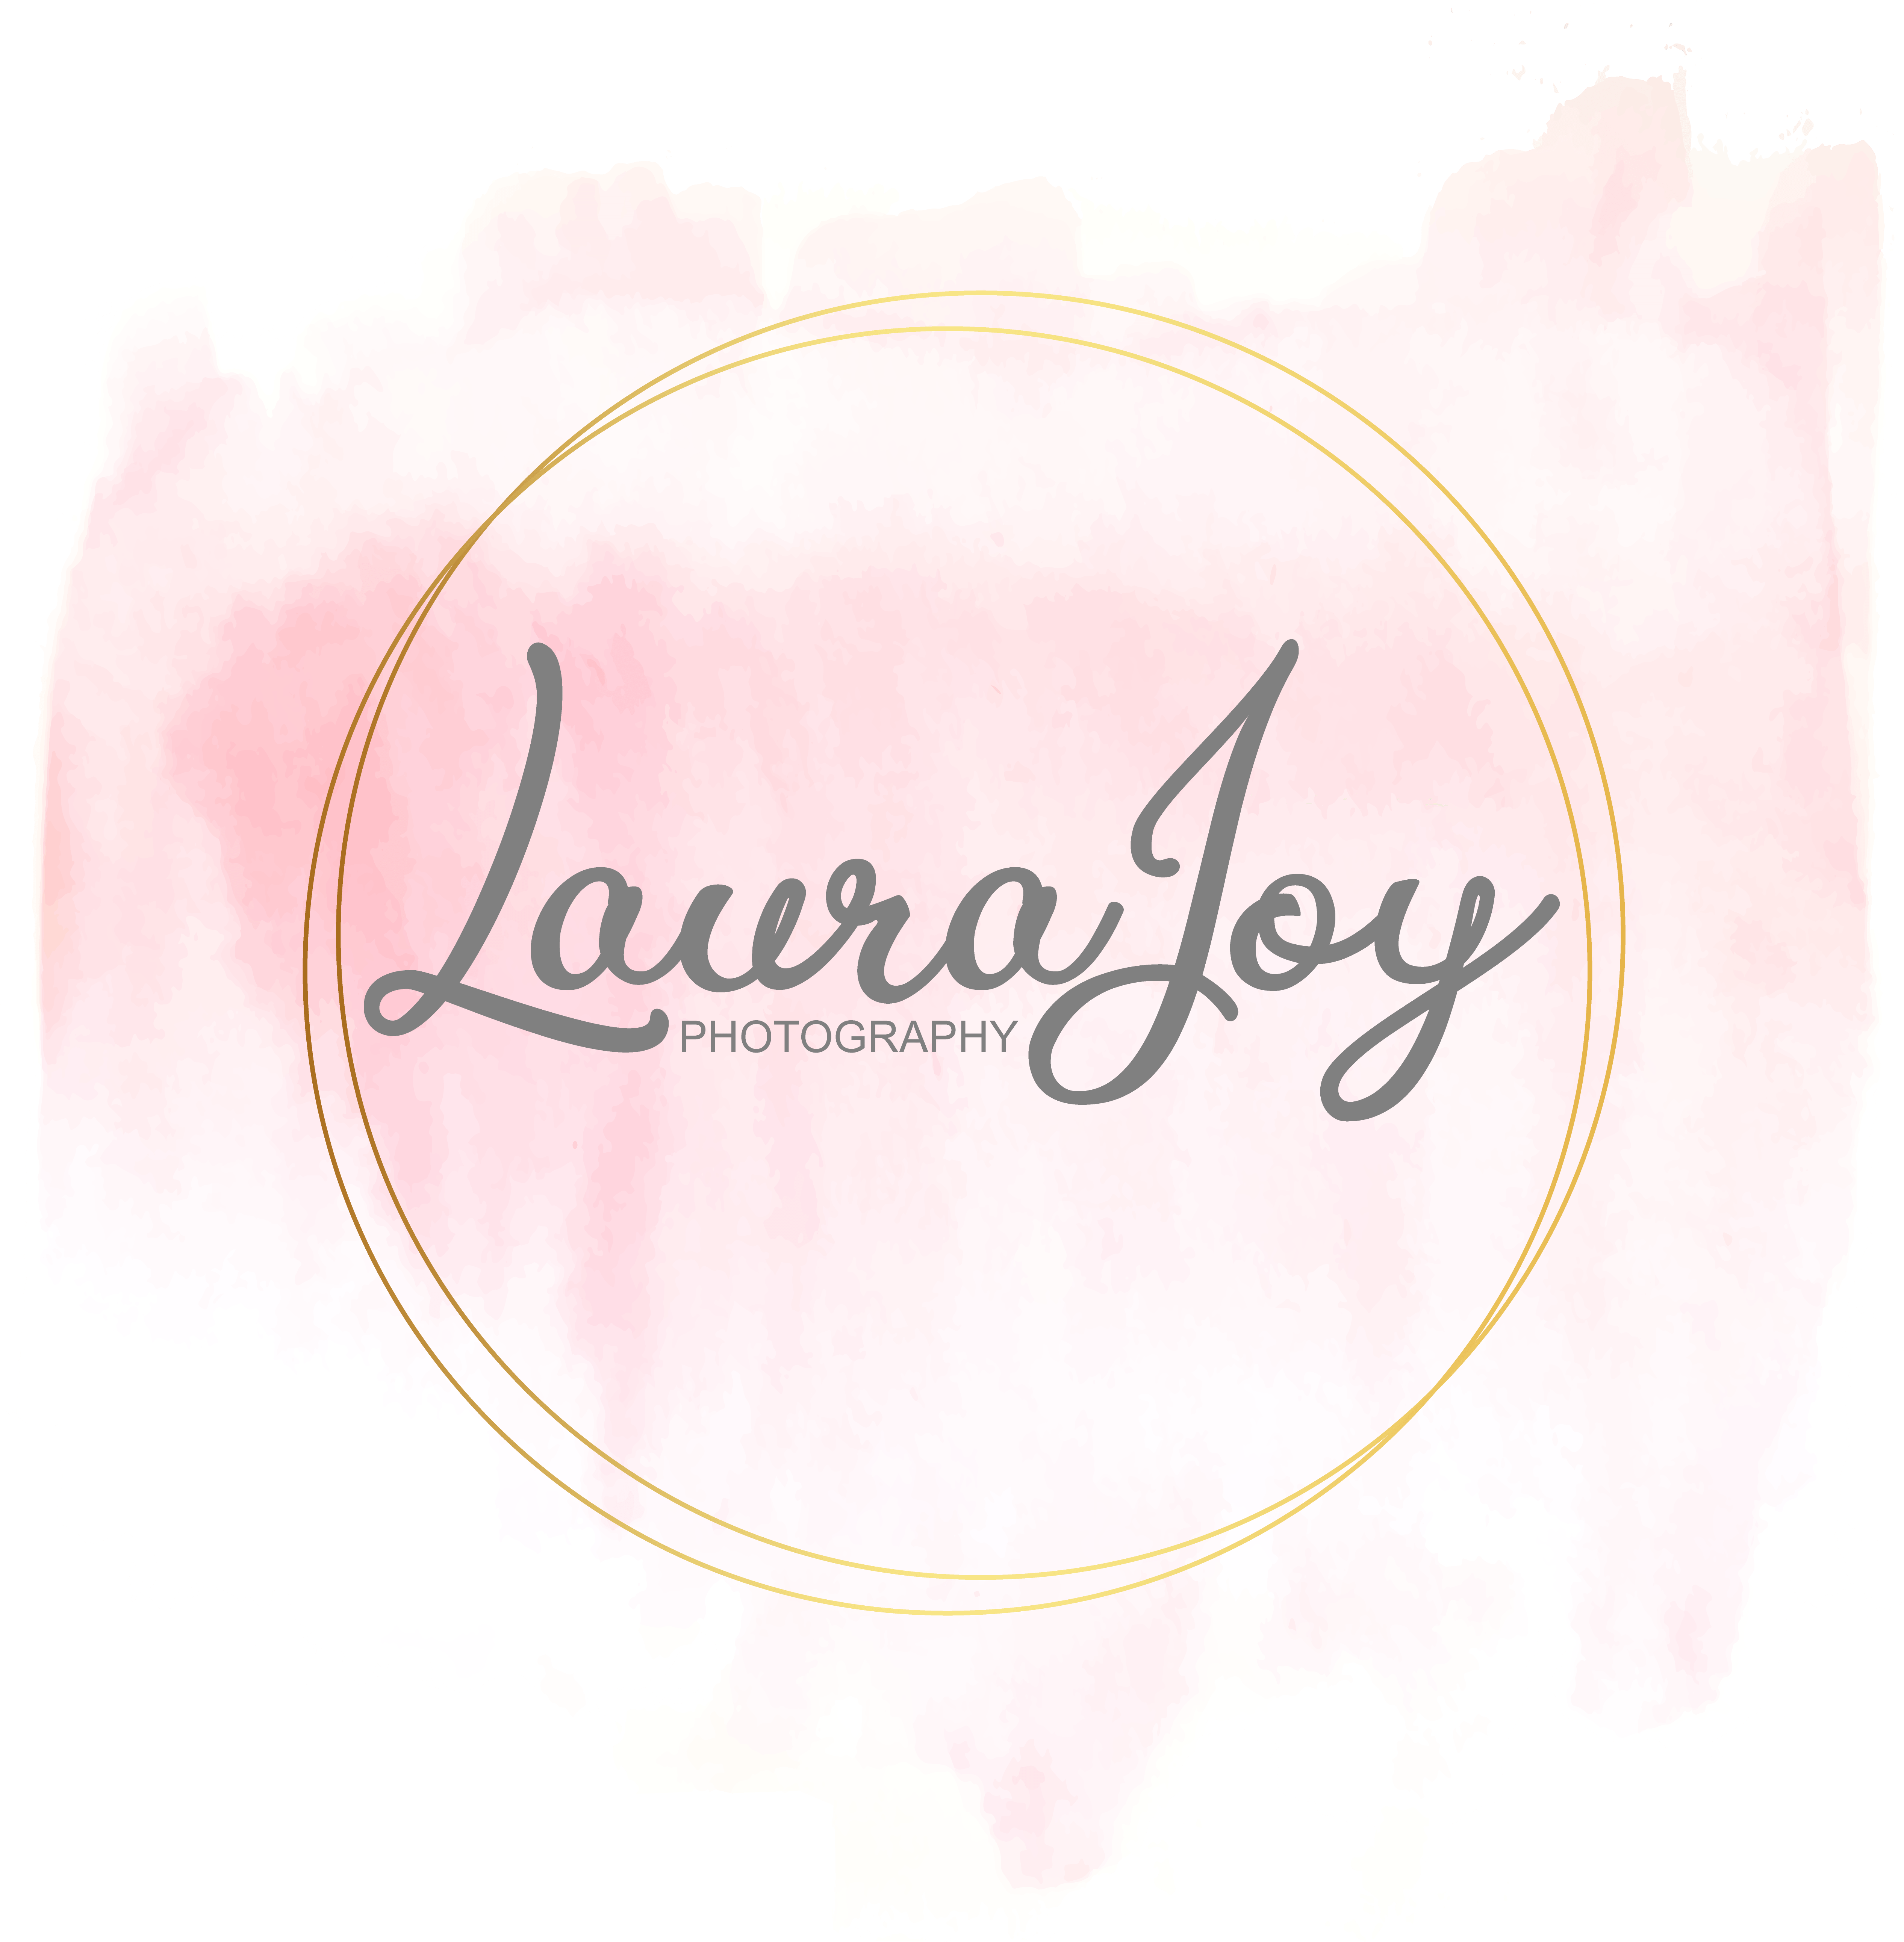 Laura Joy Photography